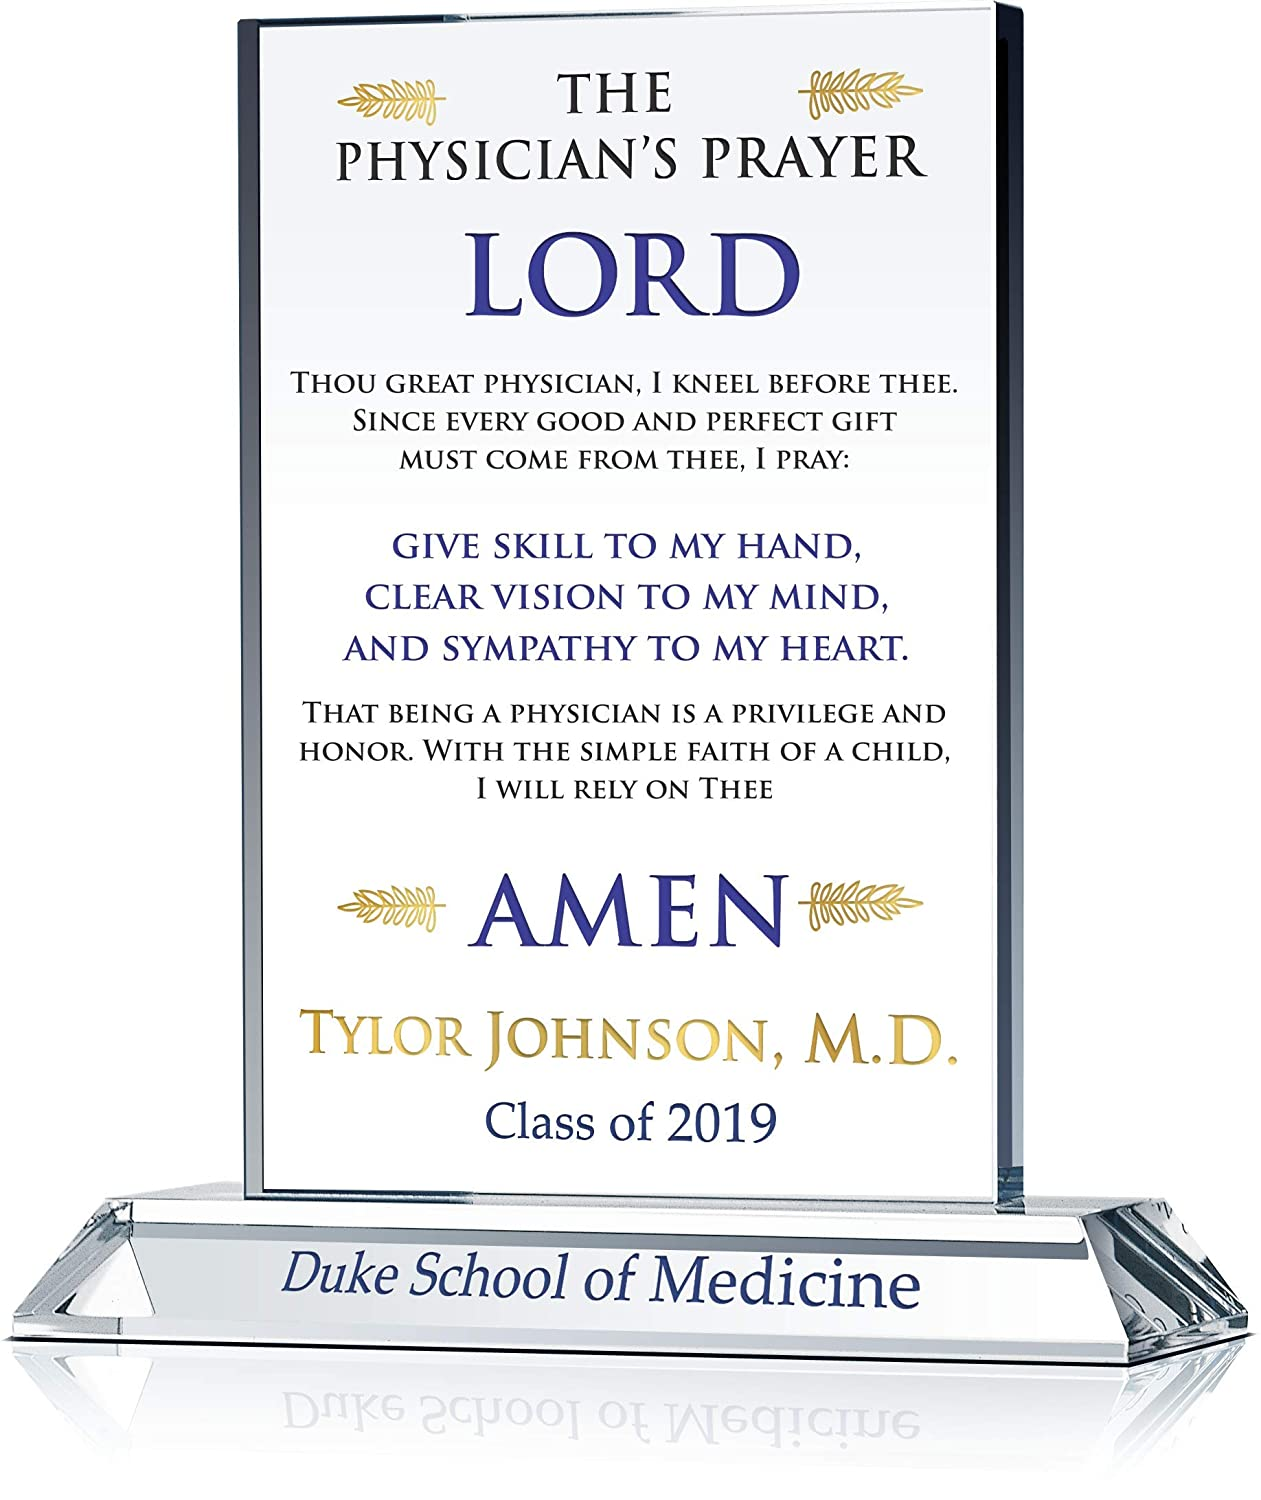 Personalized Physician's Prayer Christian Medical School Graduation Gift  Plaque Customized for Son, Daughter, Boyfriend, Girlfriend, Brother,  Sister,